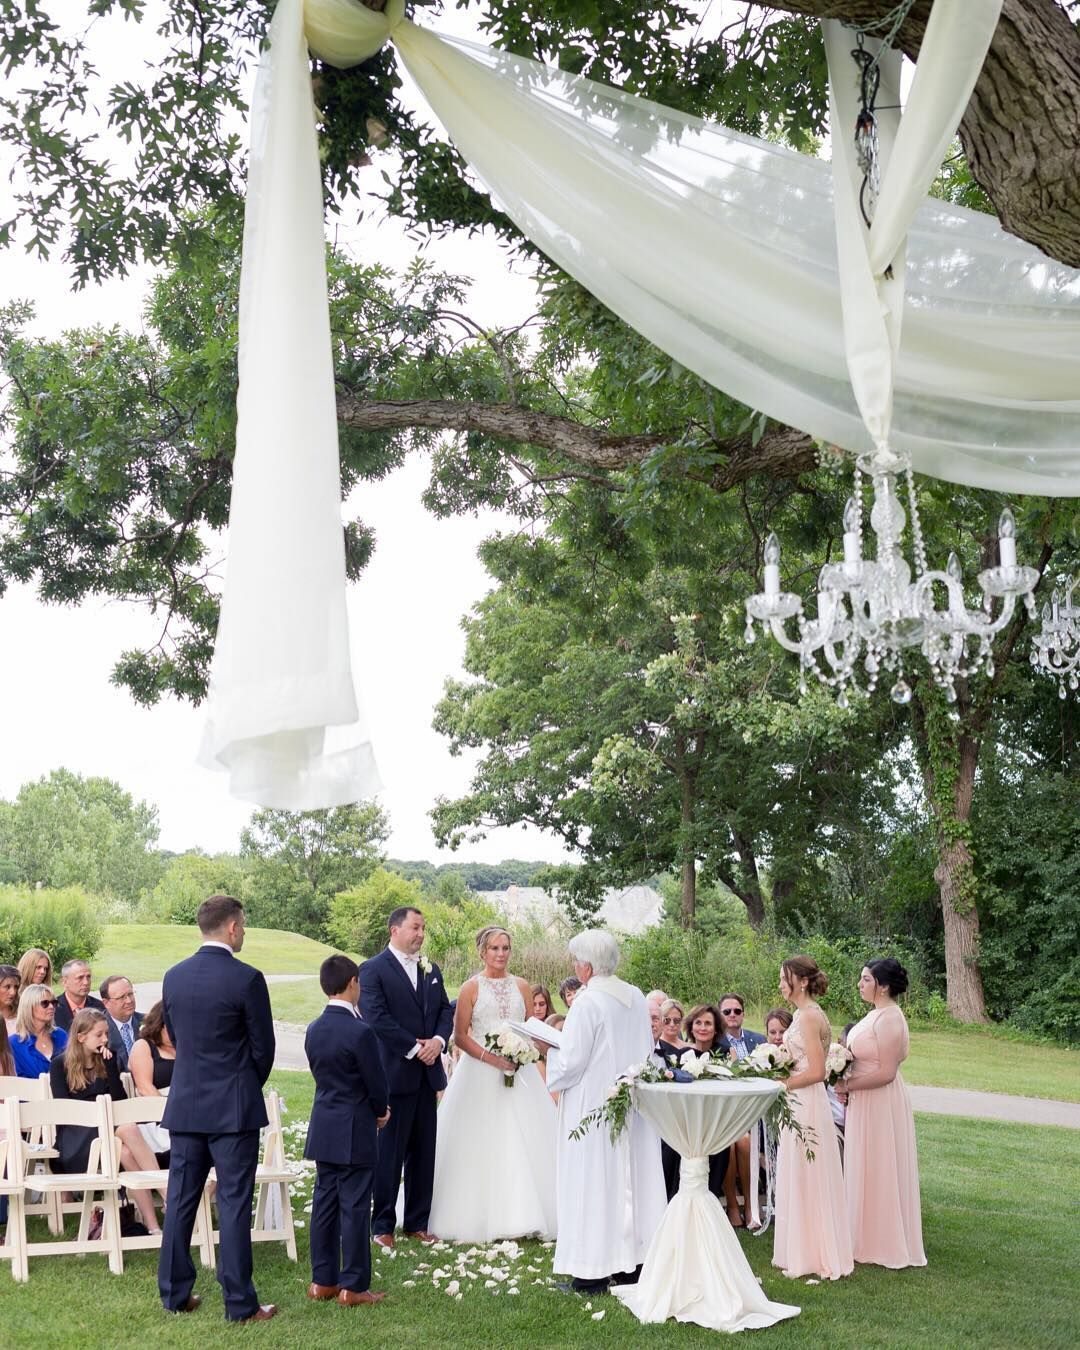 Outdoor Wedding Ceremony At St Charles Country Club Chicago